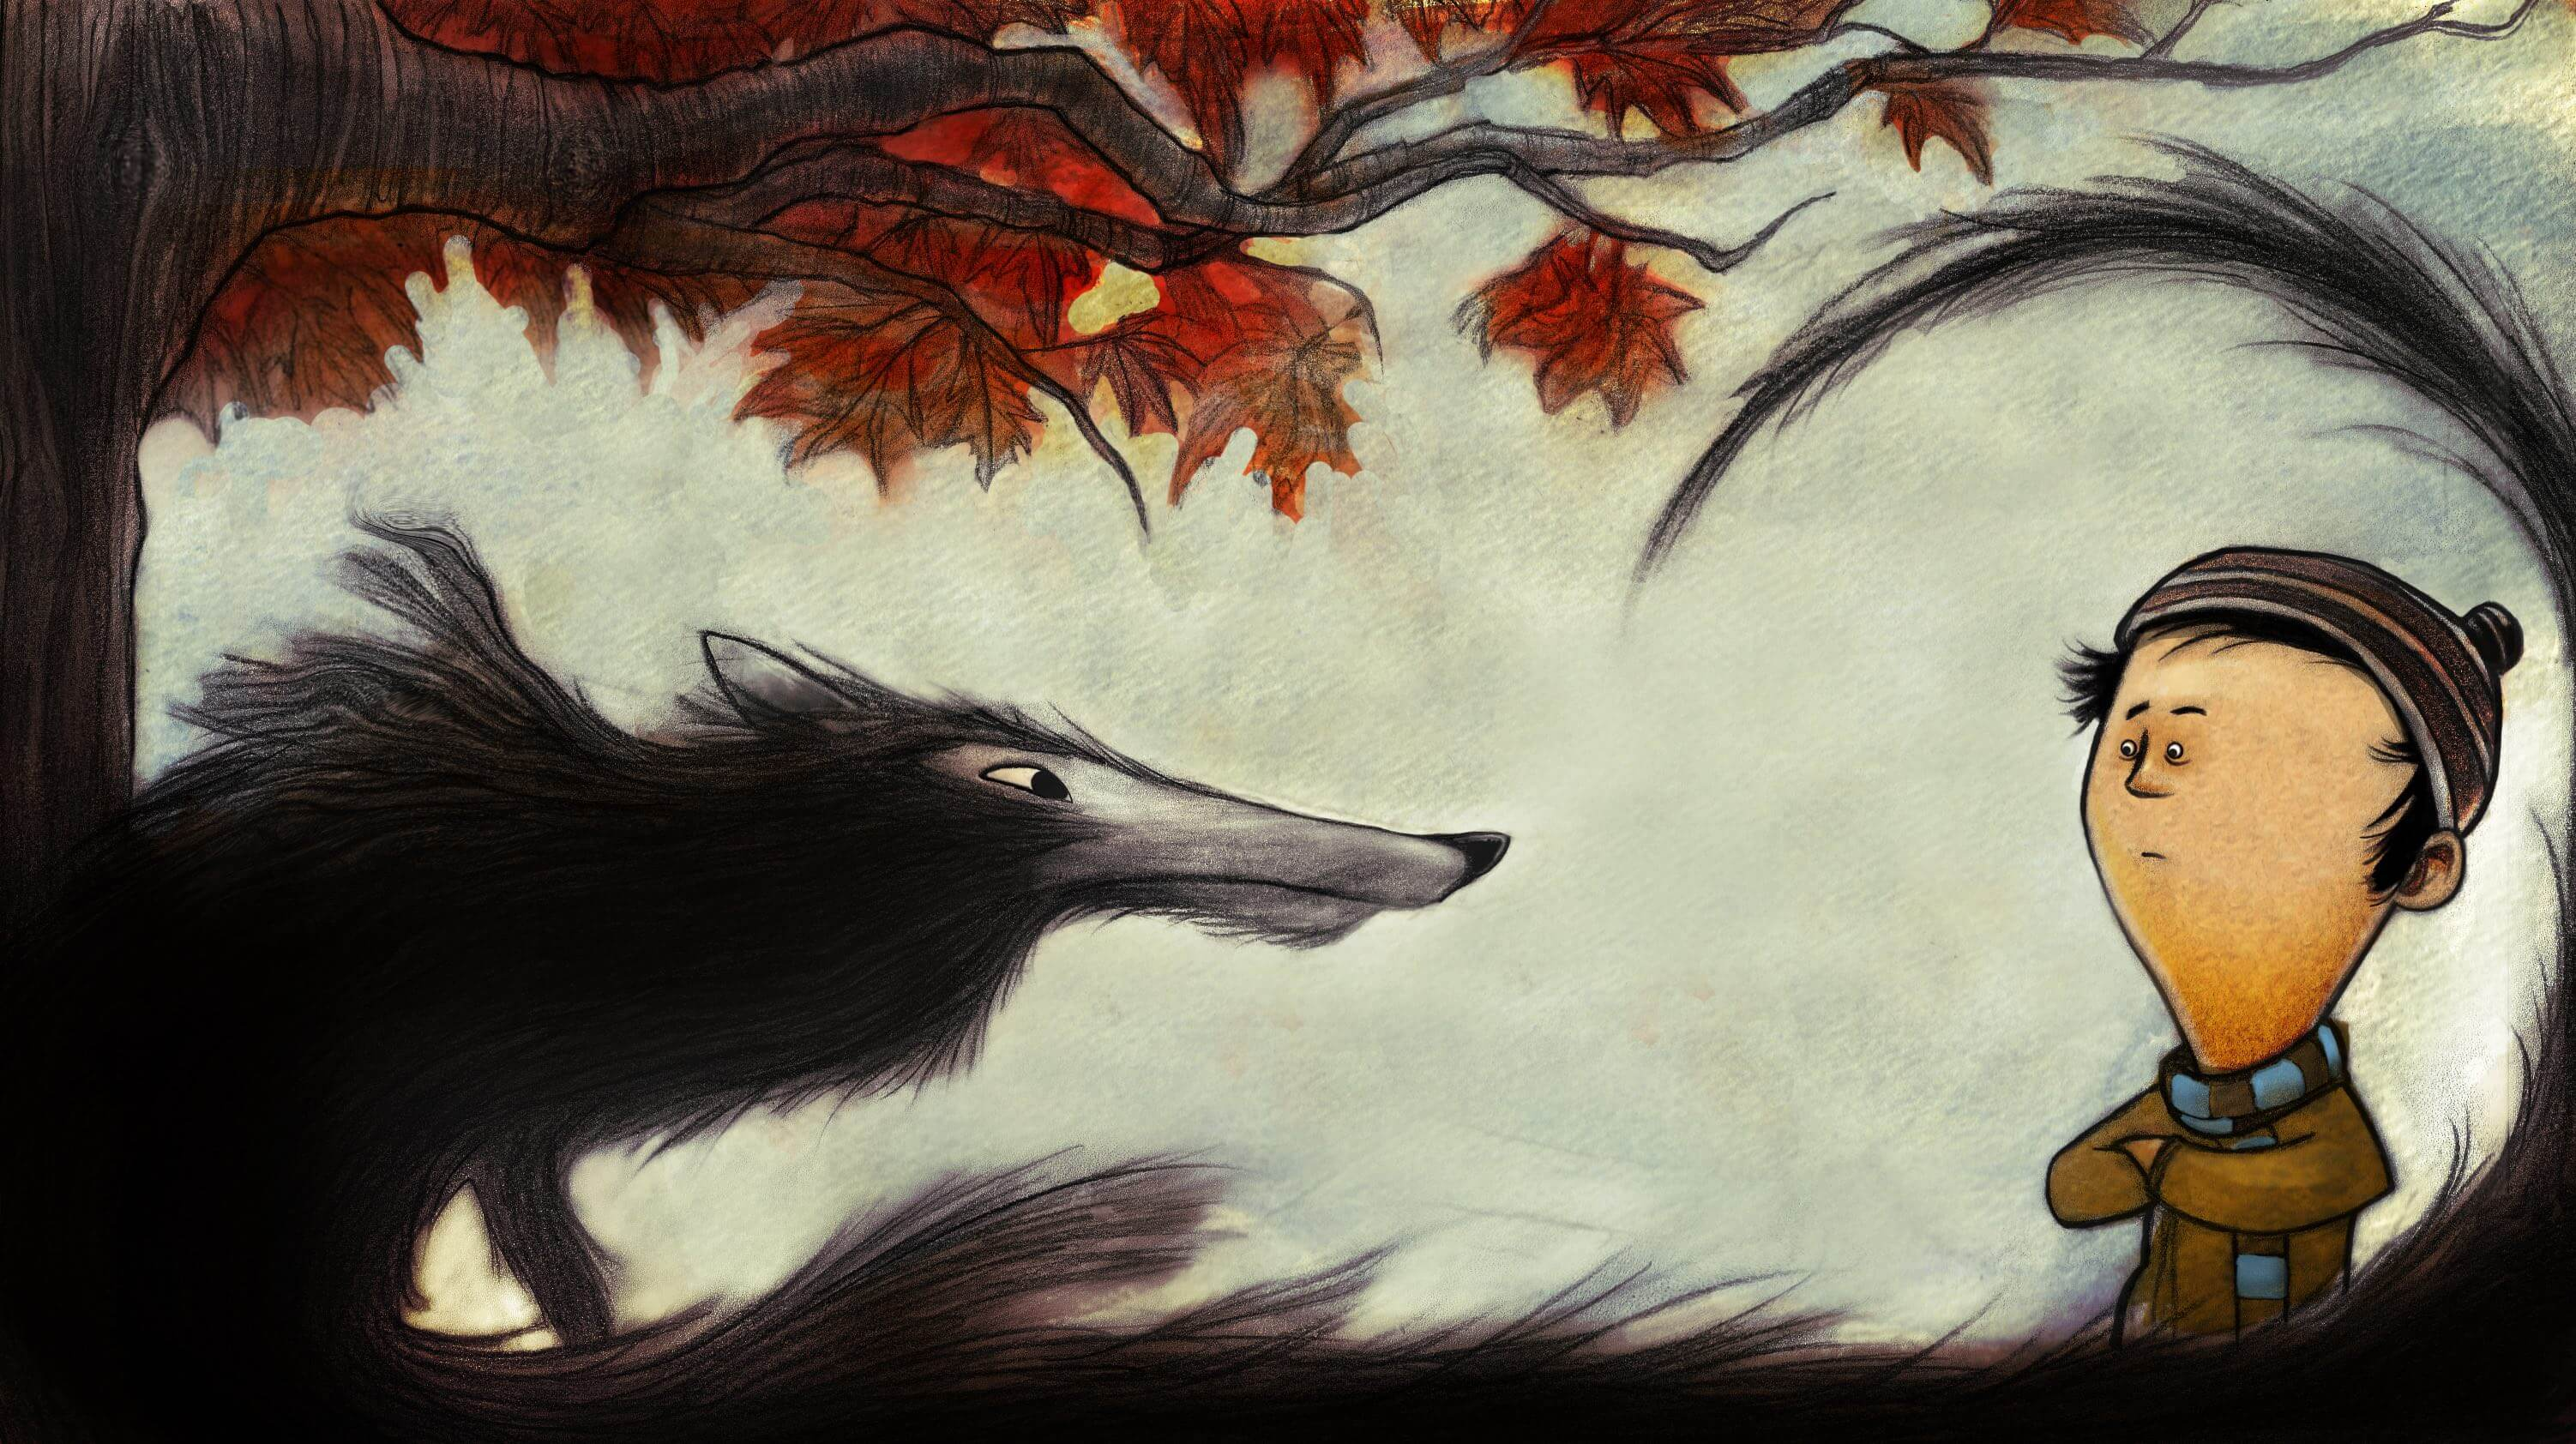 Storybook illustration of a boy and a wolf